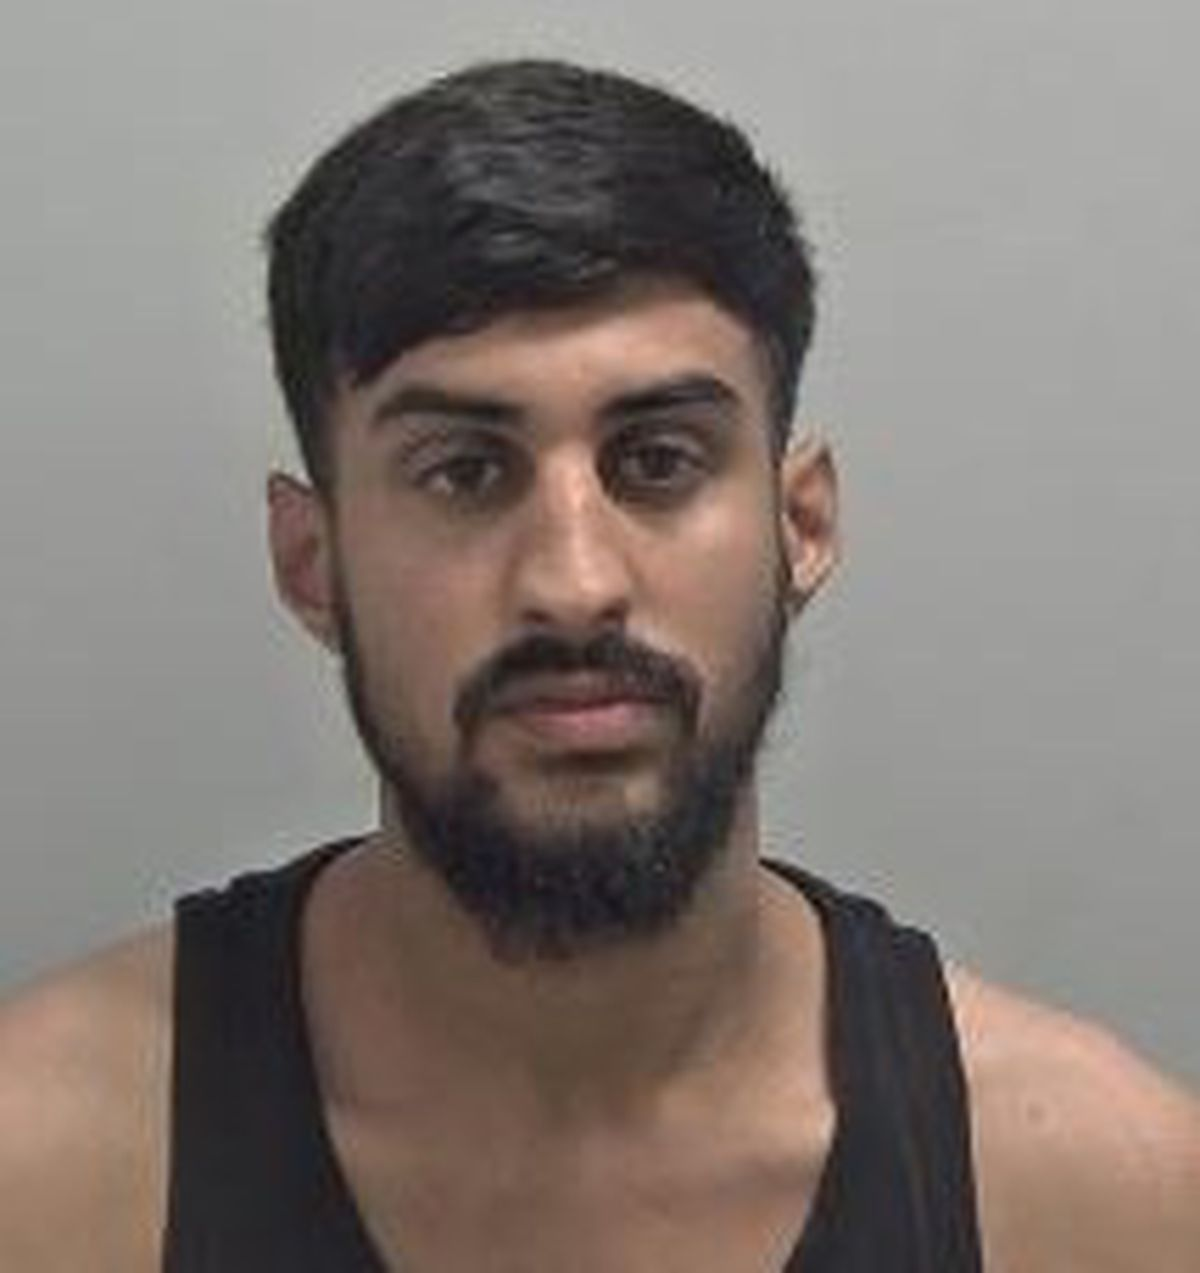 Zohabe Akbar was ordered to pay back cash he was caught with in Nuneaton